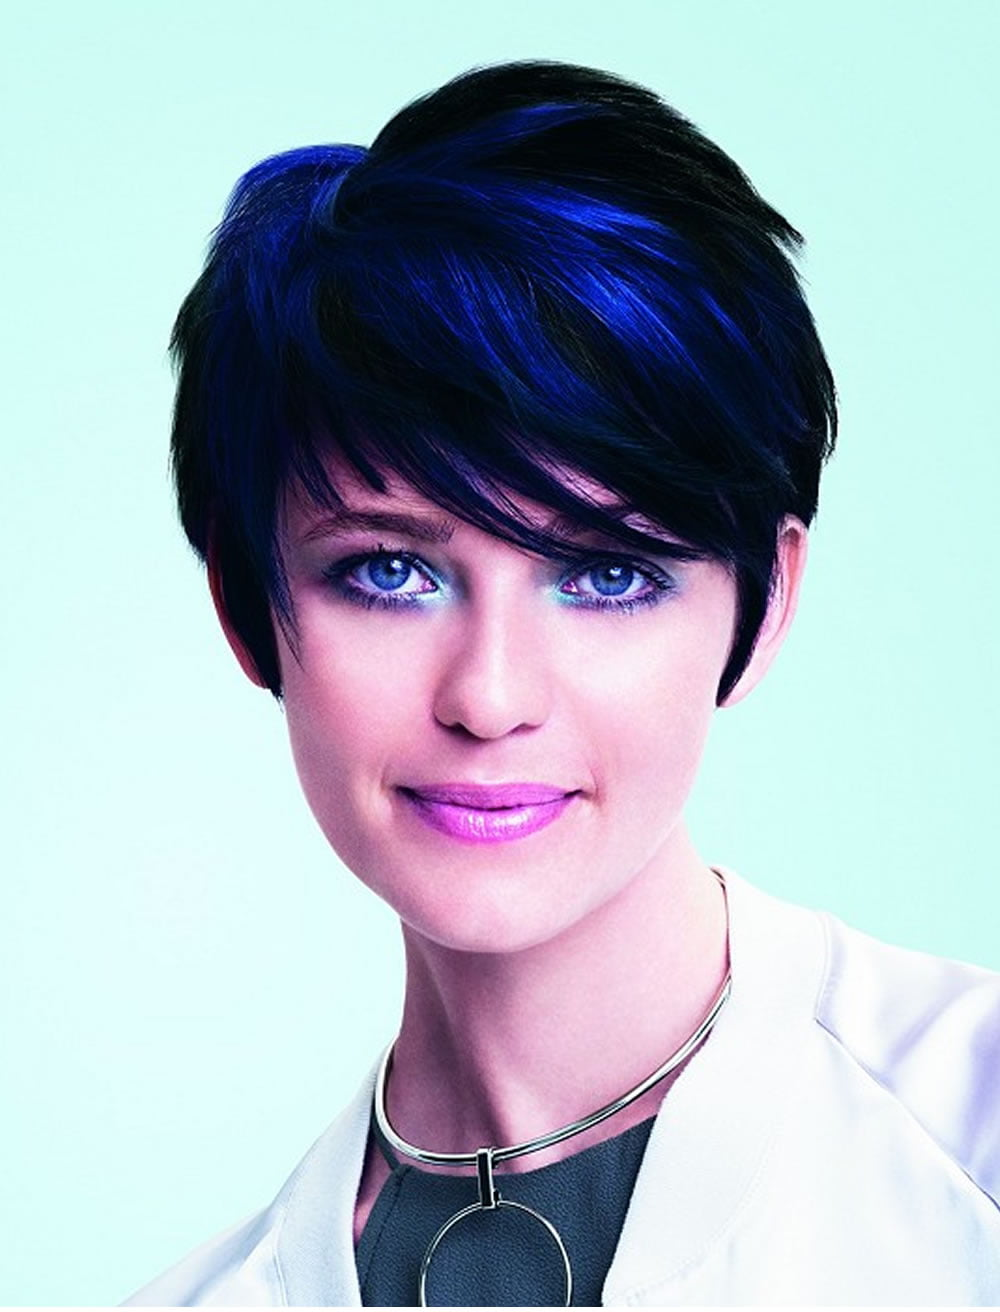 For girl short hairstyle all